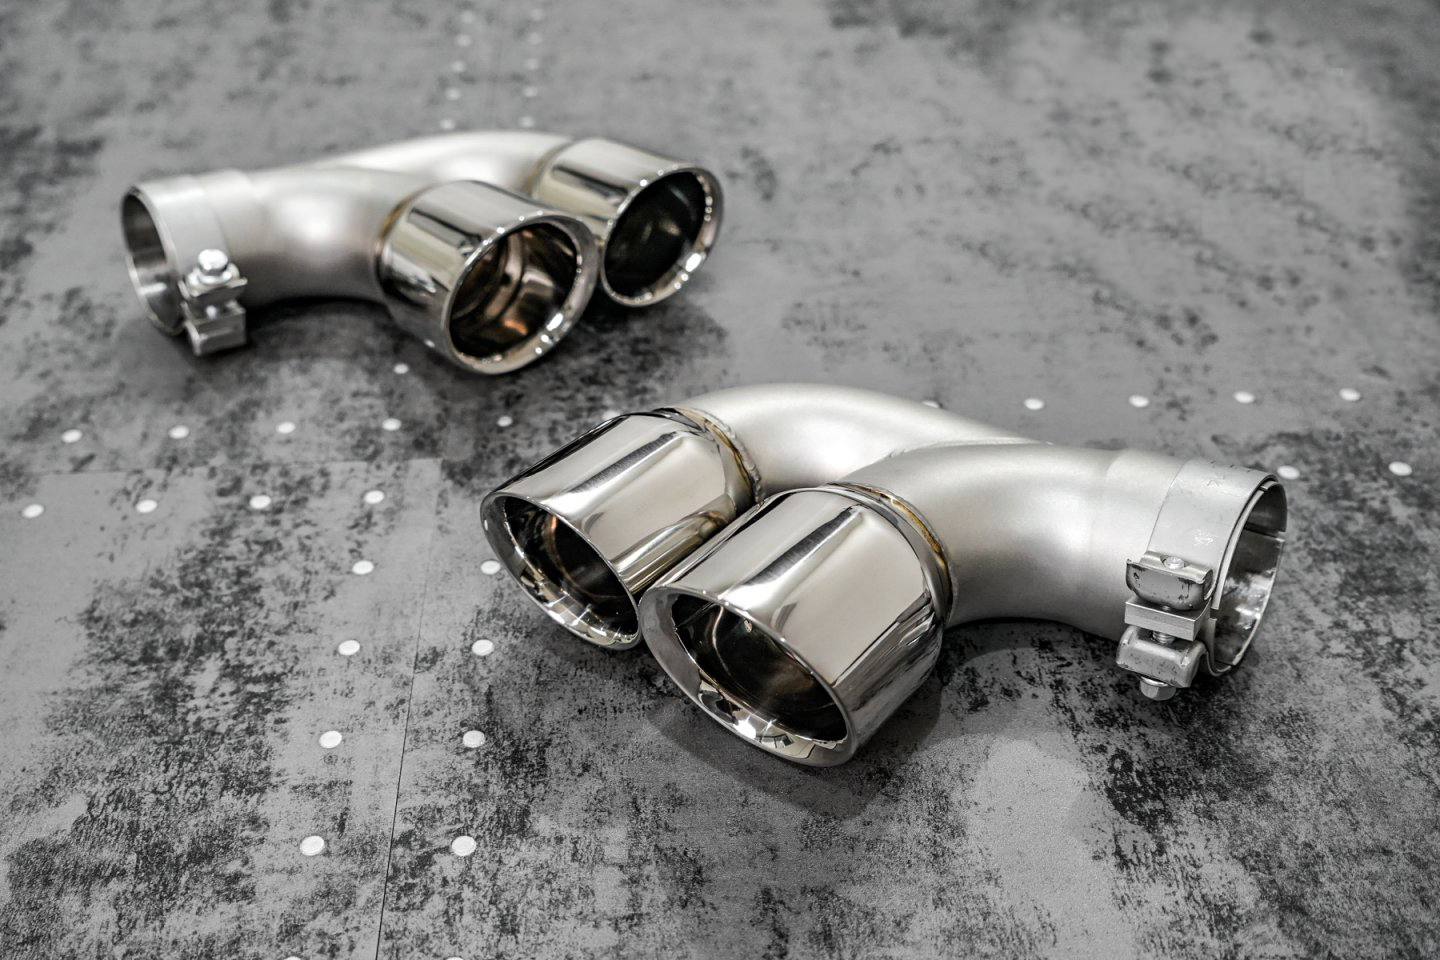 TNEER Exhaust Systems for PORSCHE 997 Turbo - 997.2 Turbo / Turbo S